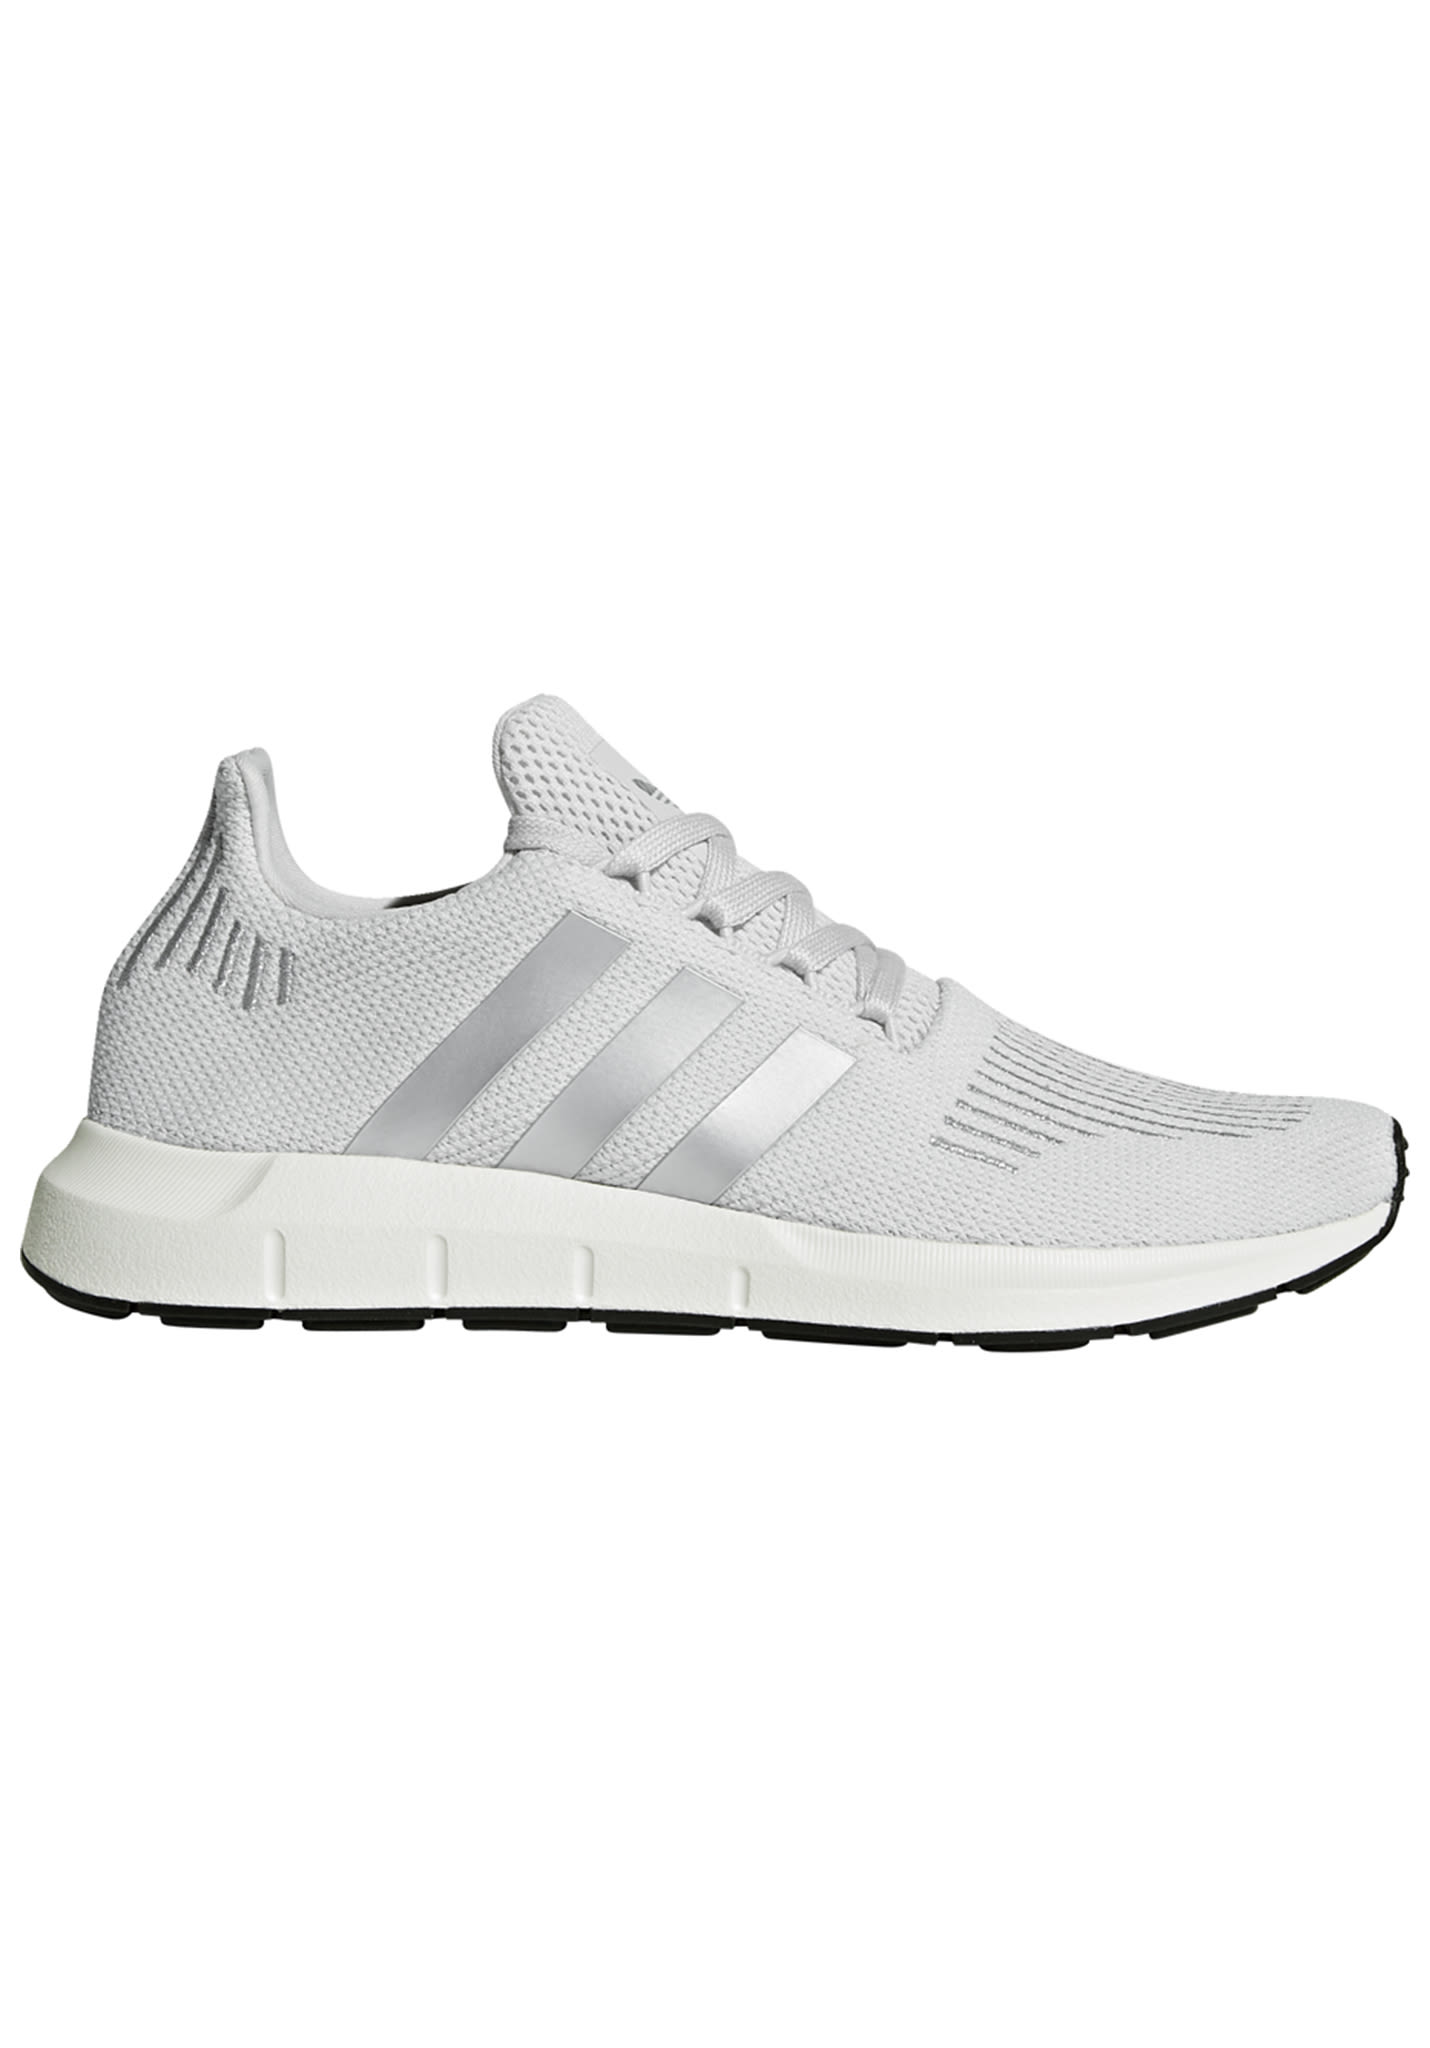 297248cf ADIDAS ORIGINALS Swift Run - Zapatillas para Mujeres - Gris - Planet Sports